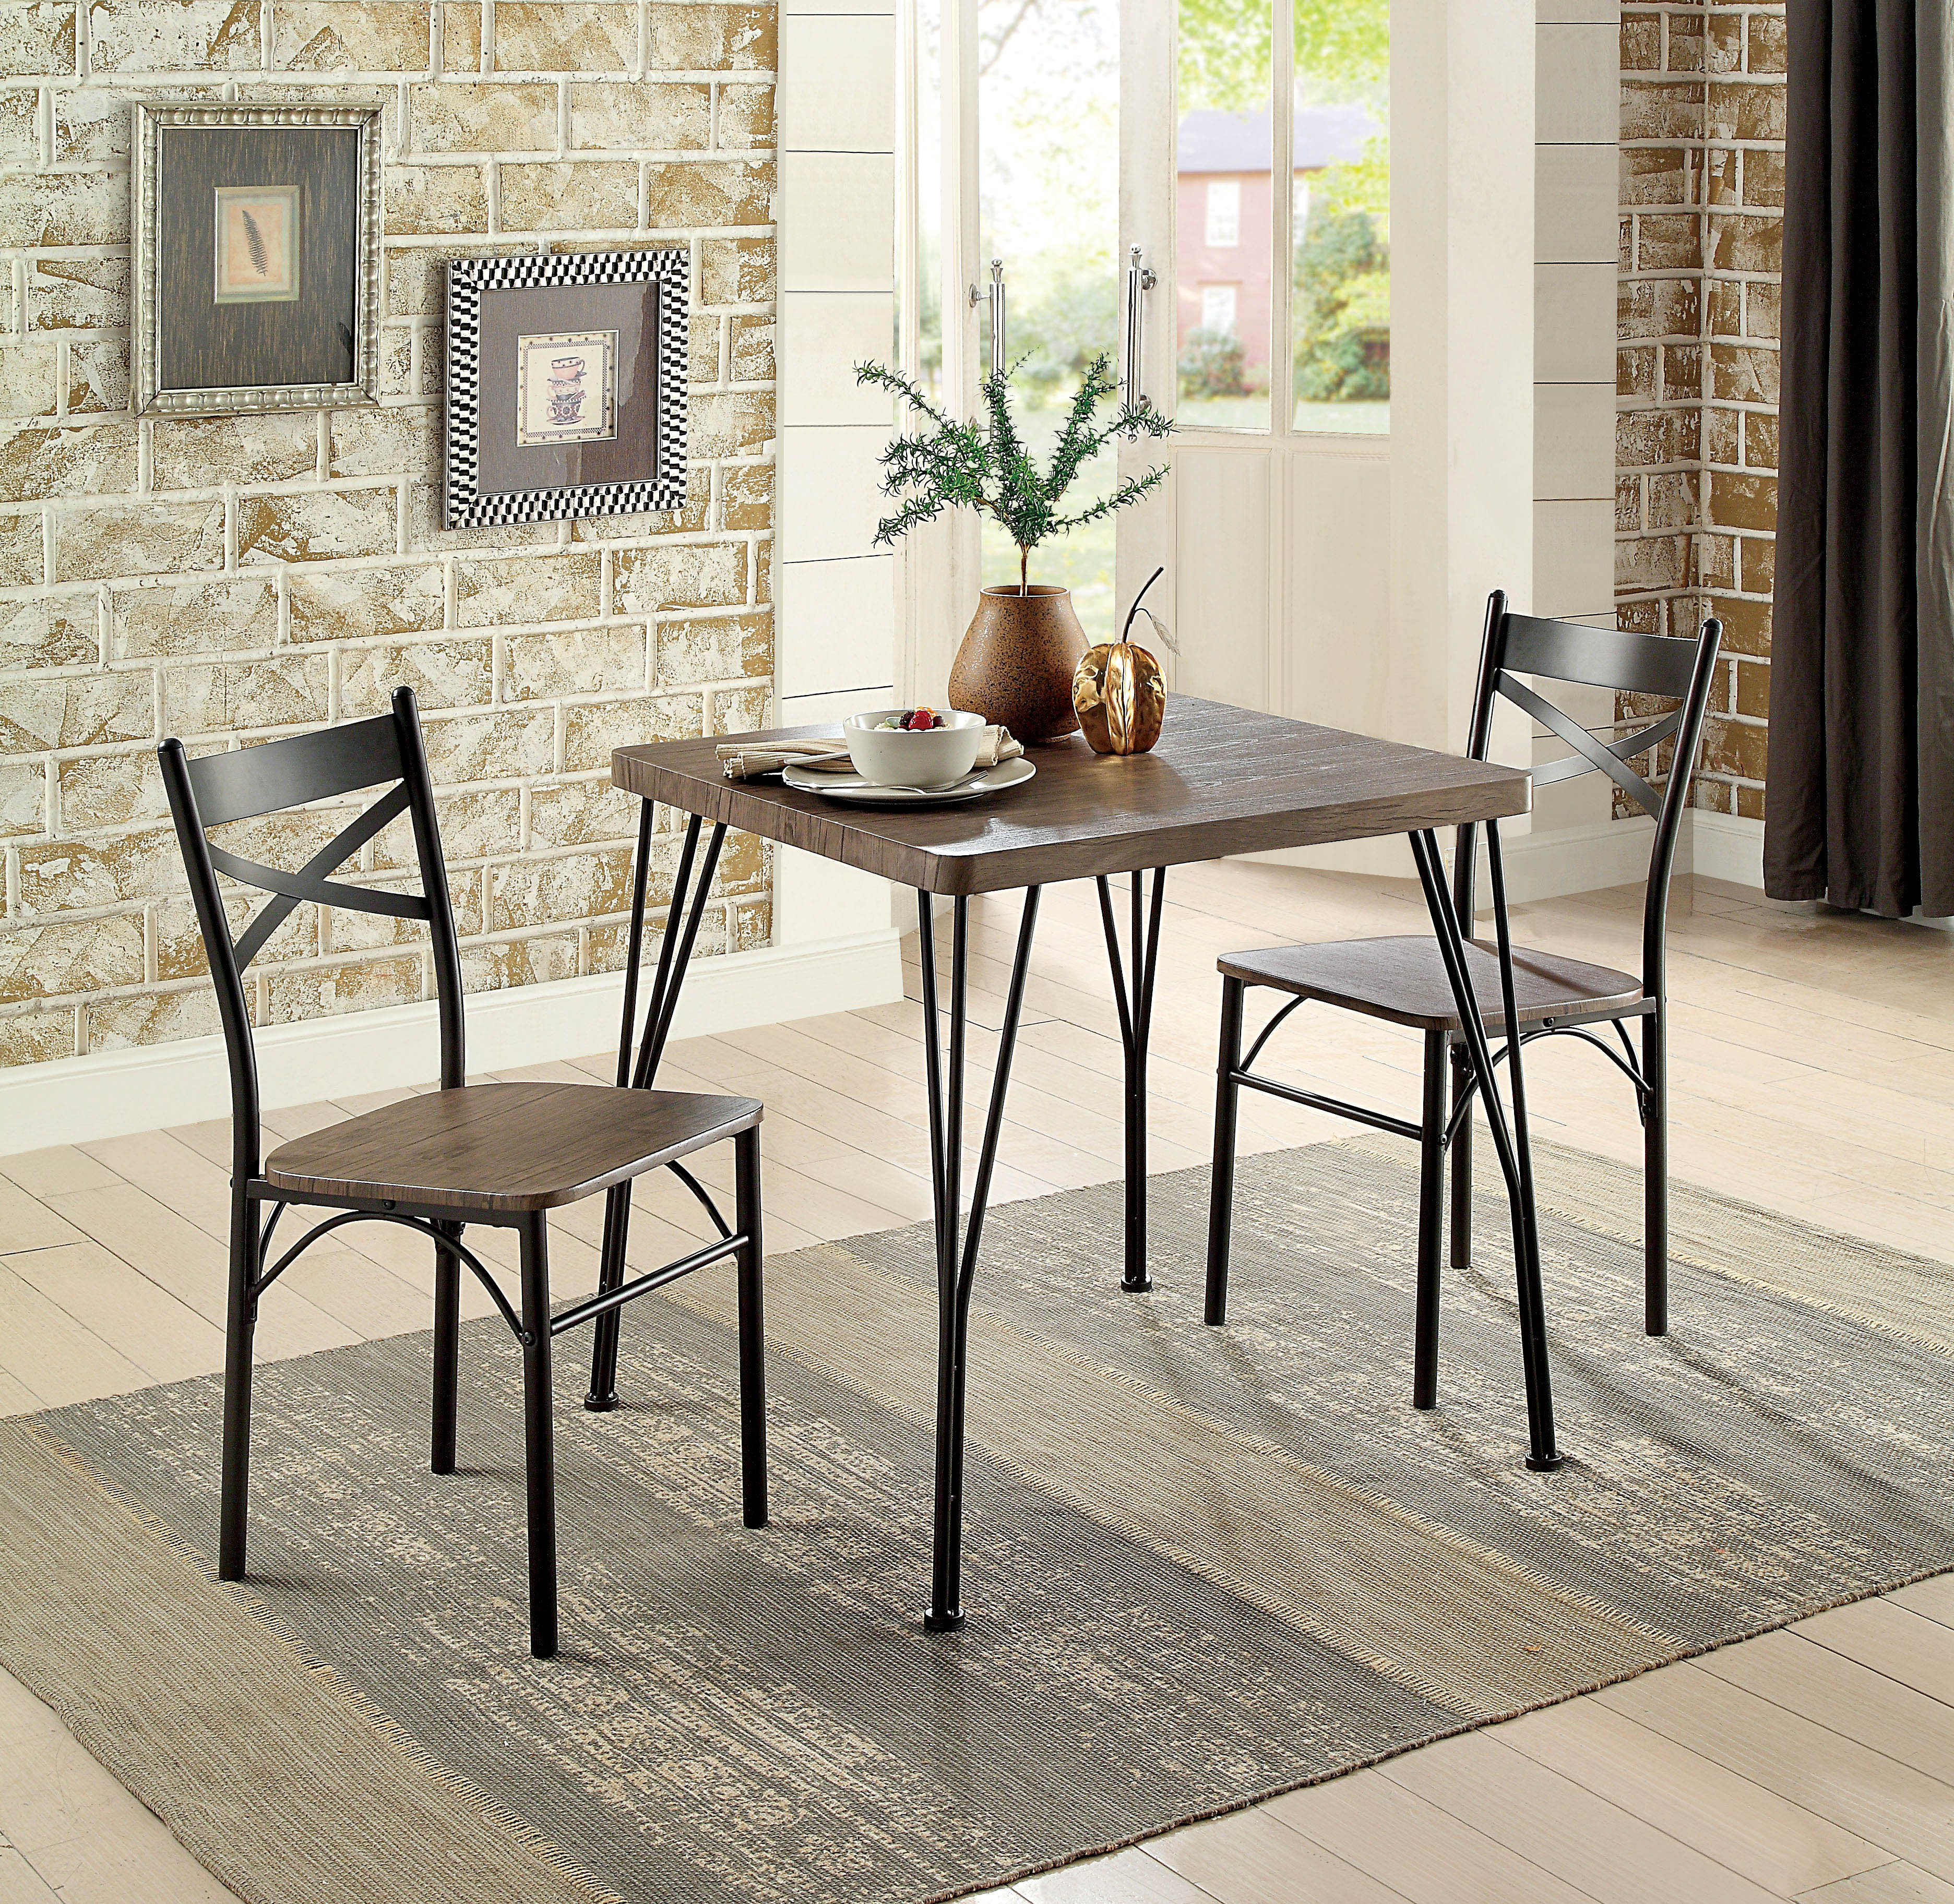 Guertin 3 Piece Dining Set With Preferred Frida 3 Piece Dining Table Sets (View 12 of 20)